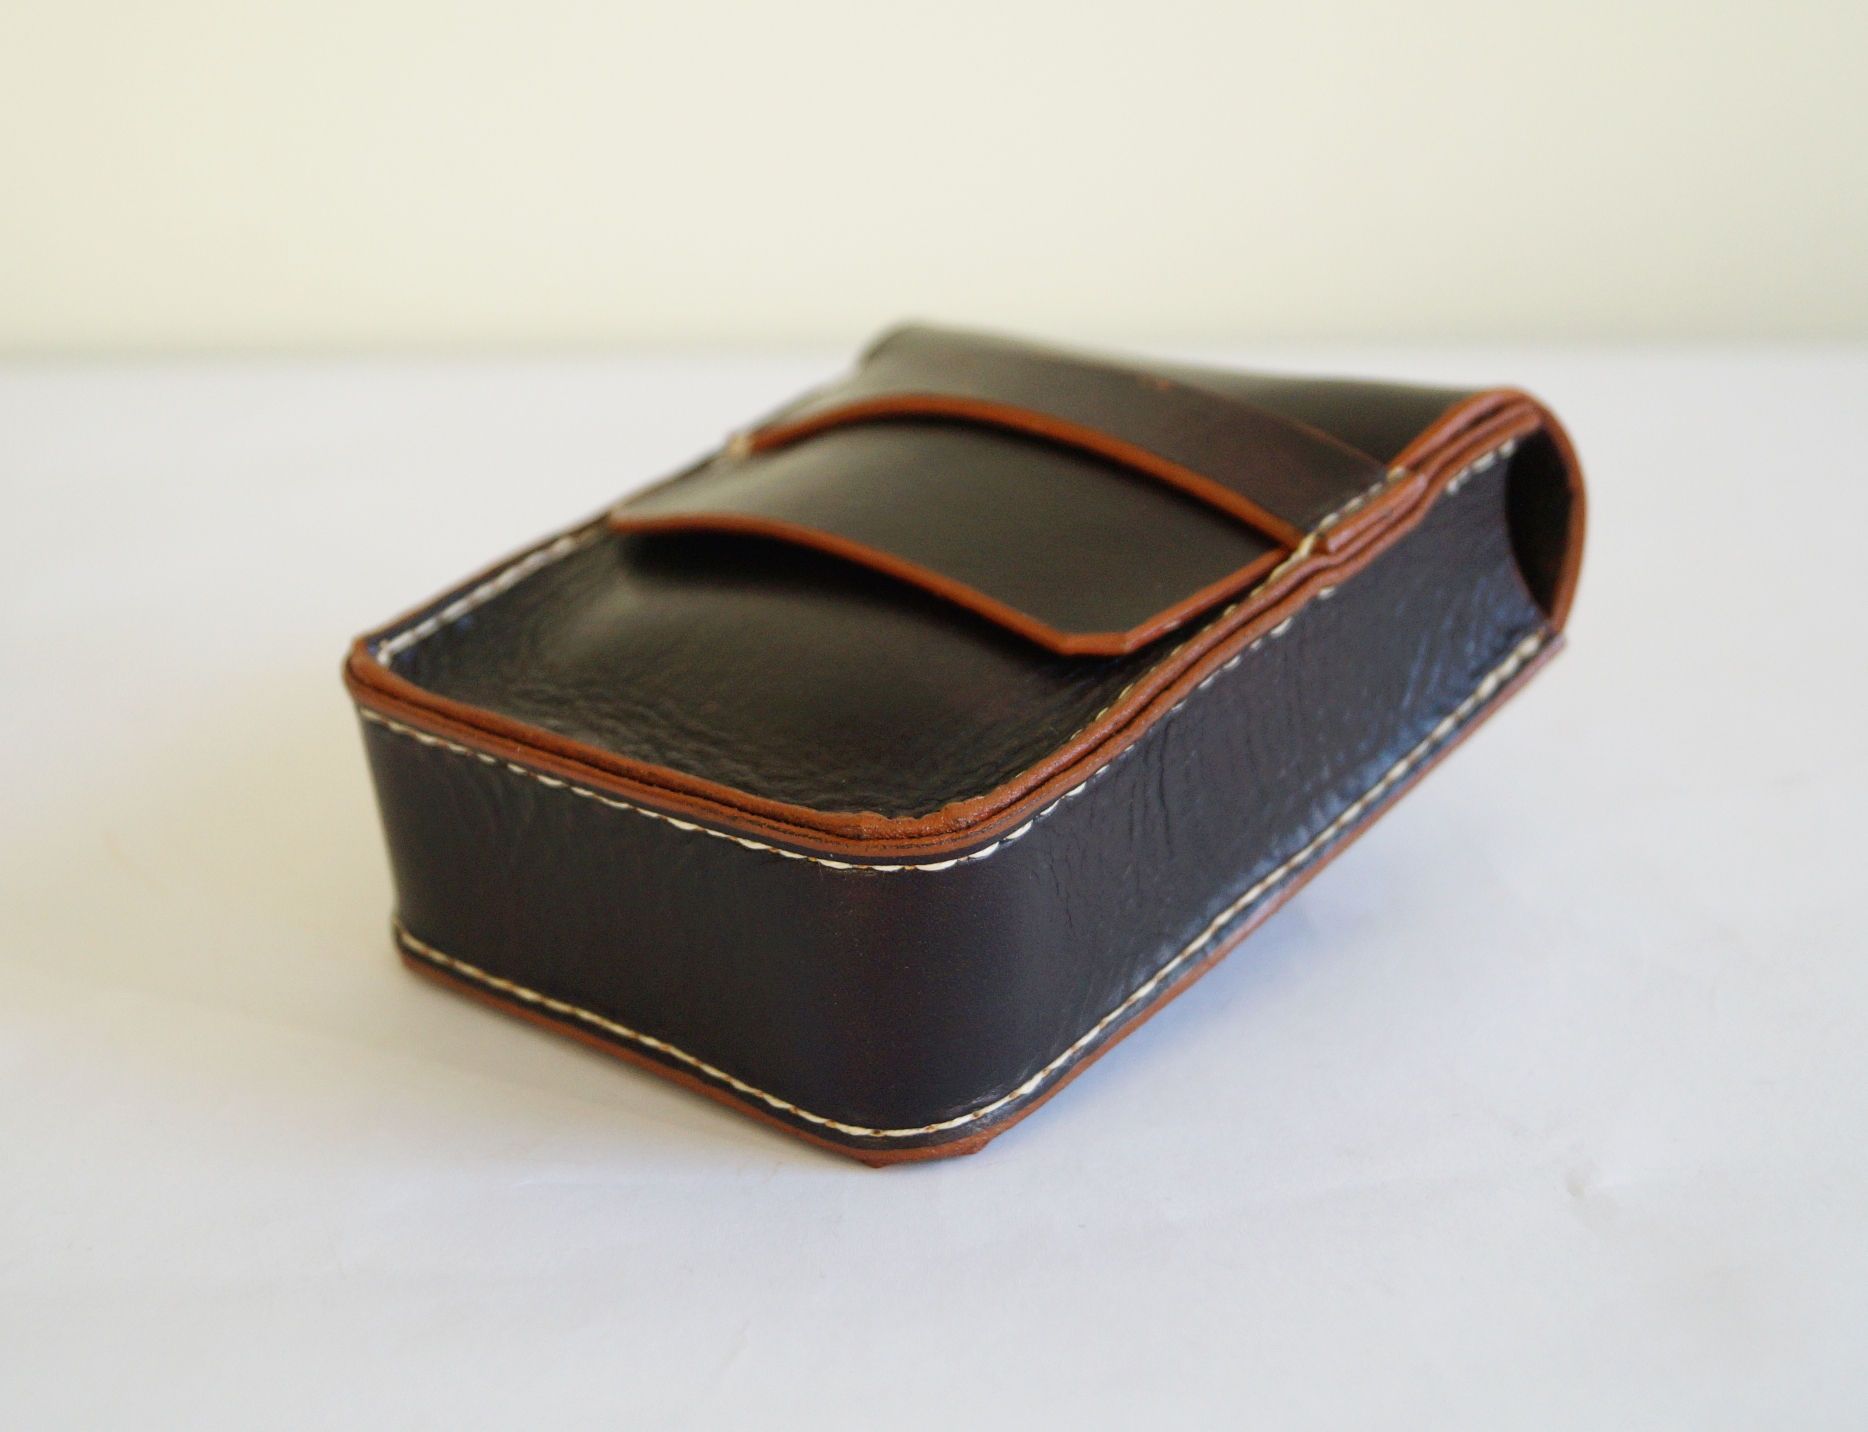 Handmade leather Belt Pouch from TeLeather